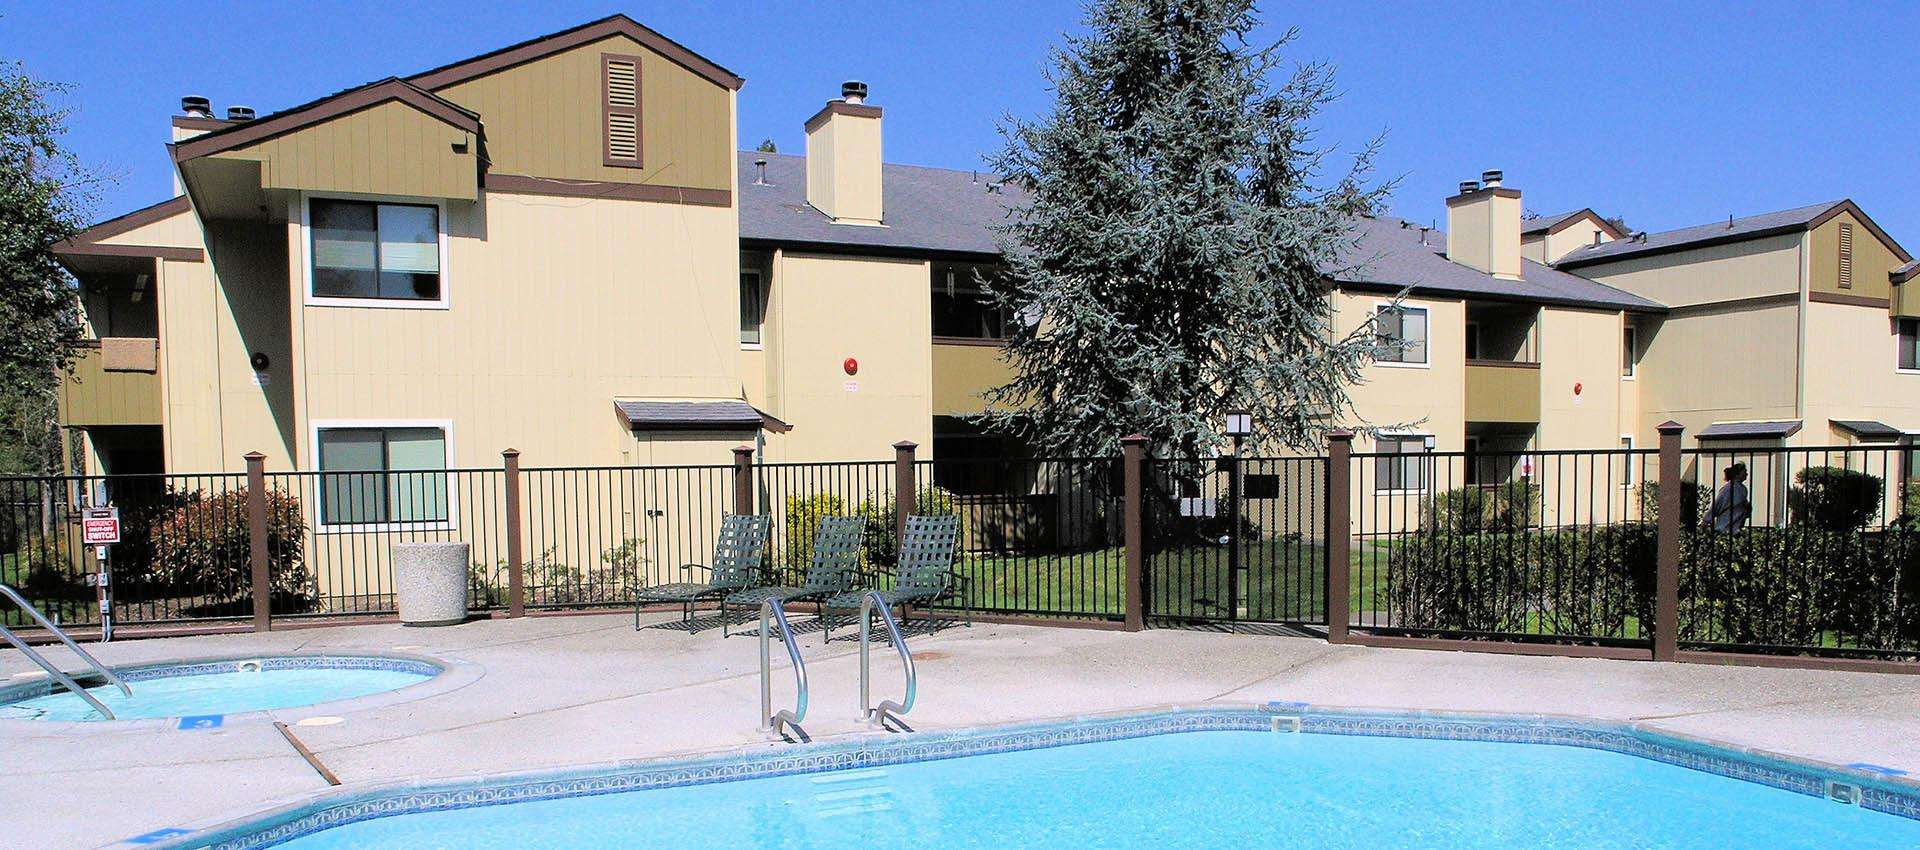 Beautiful poolat Park Ridge Apartment Homes in Rohnert Park, CA